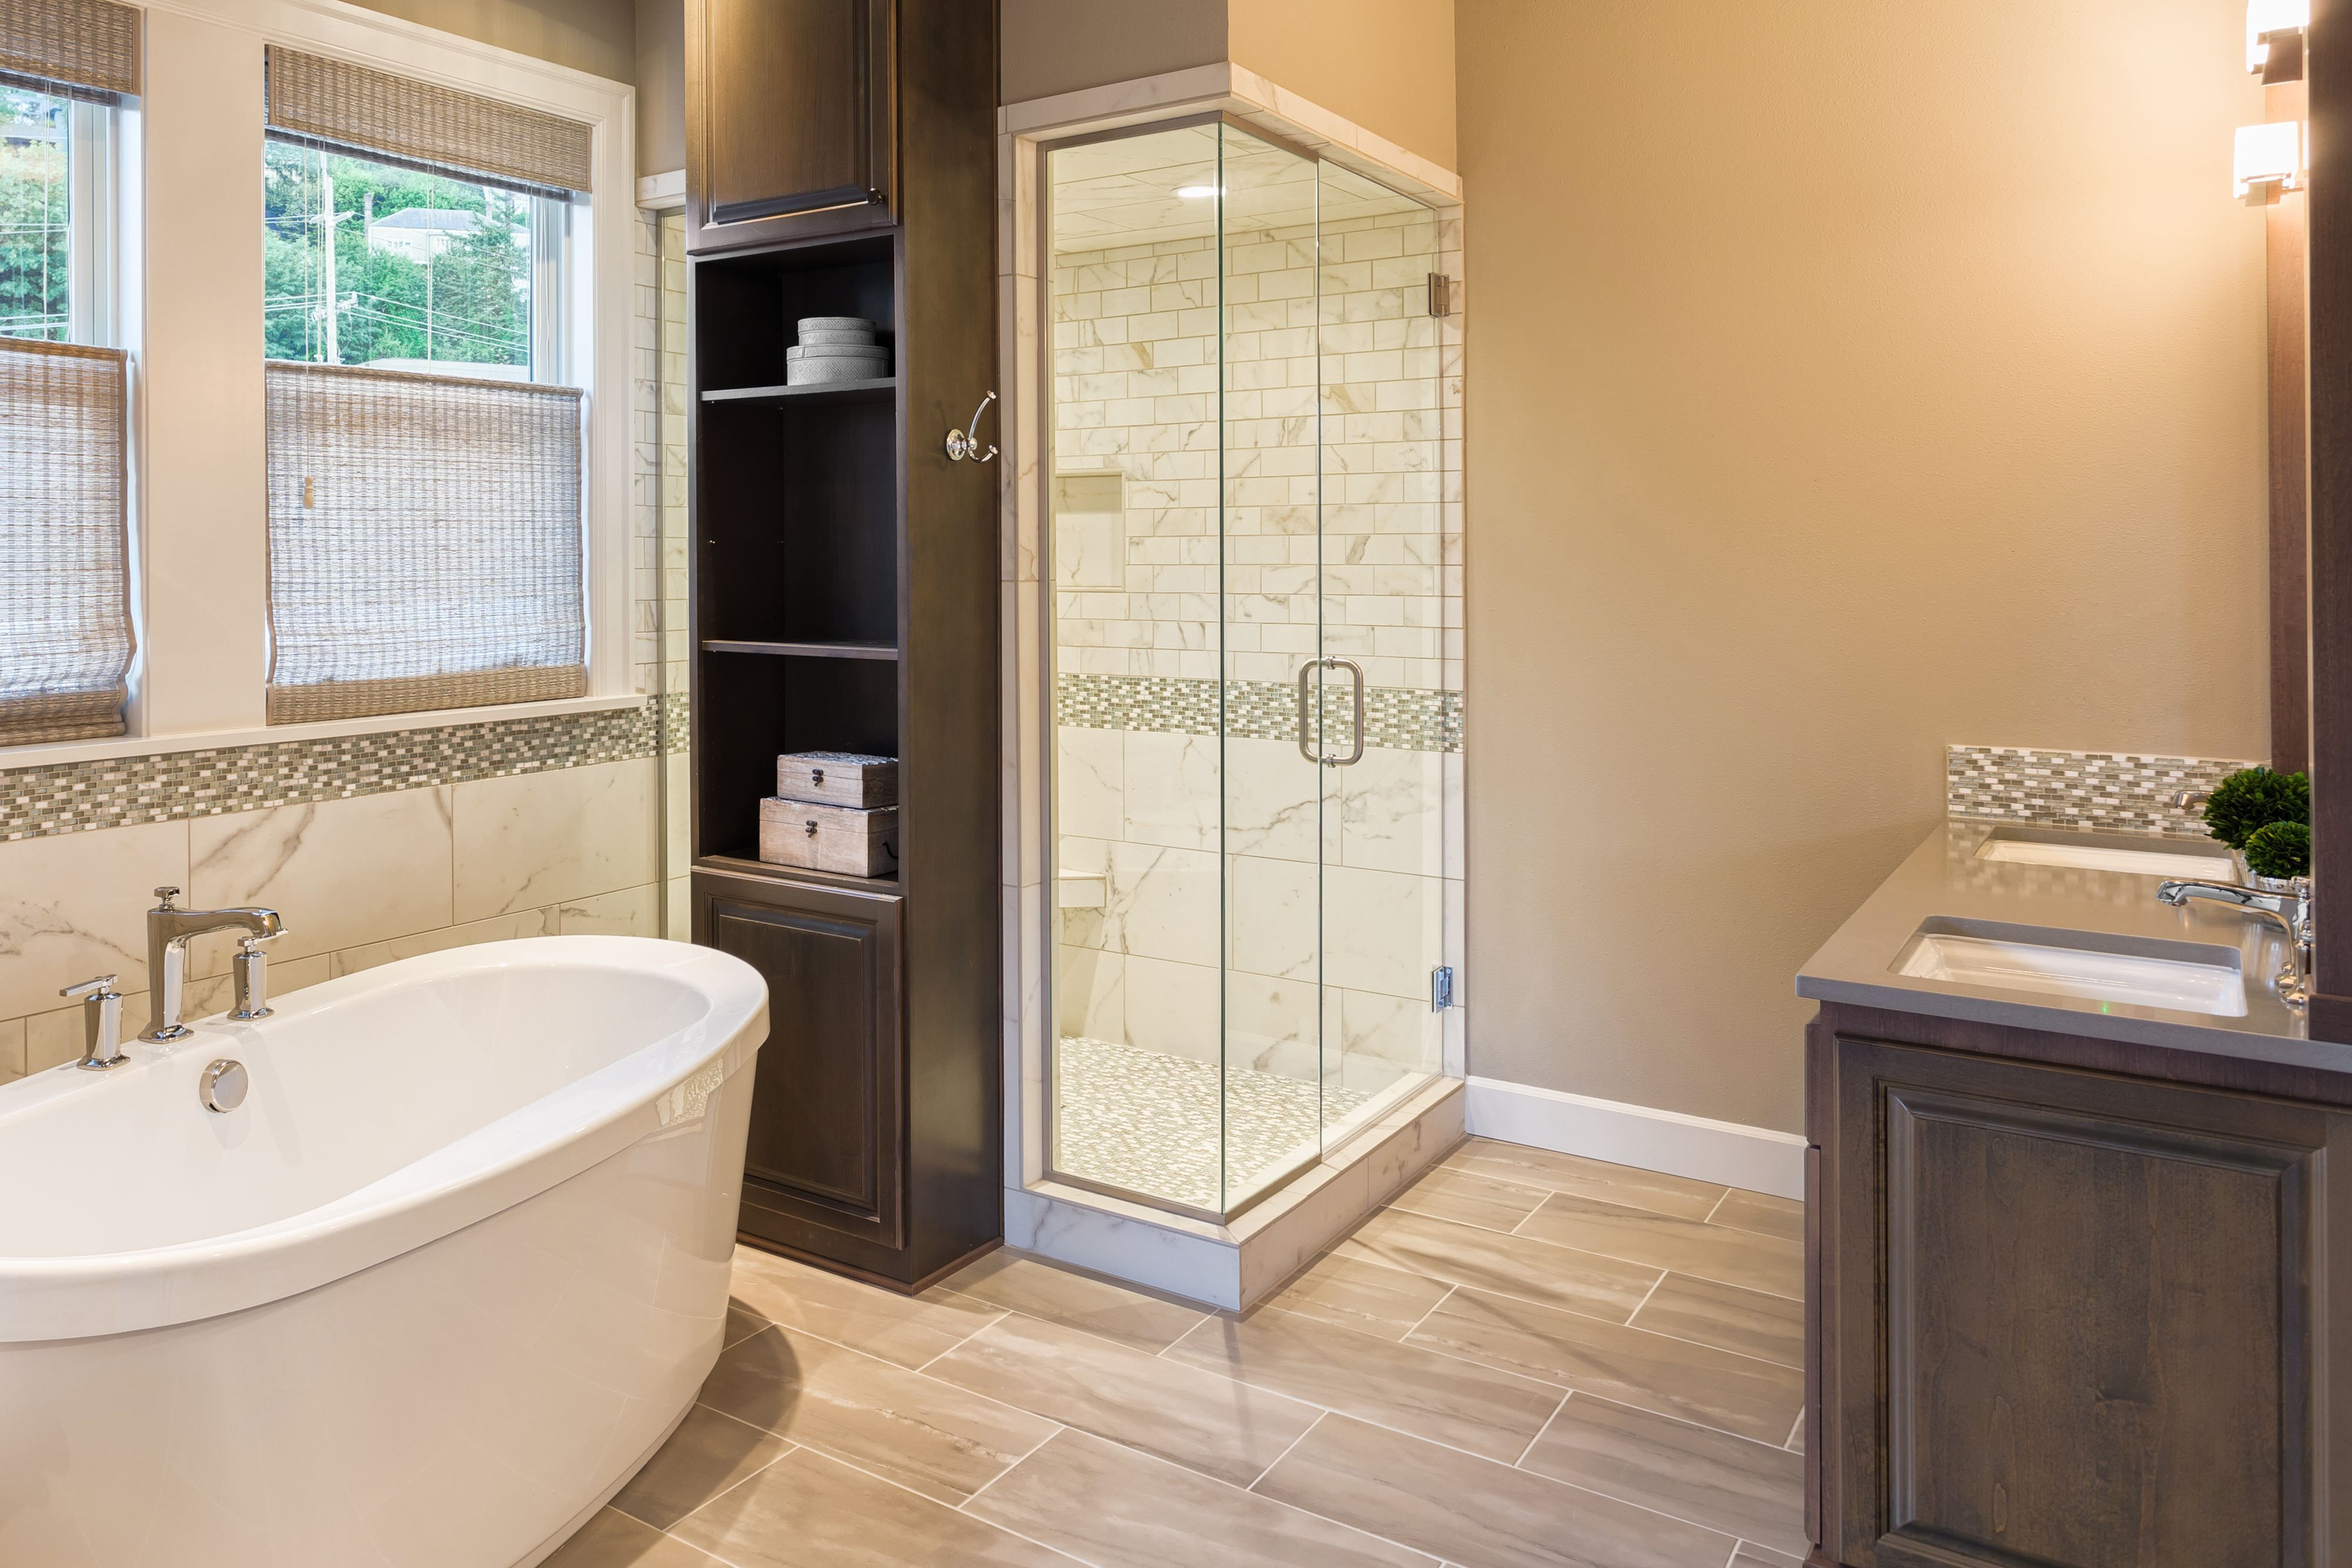 Bathtub And Shower In New Luxury Home Bathroom Remodel Cost Master Bathroom Design Bathroom Remodel Master